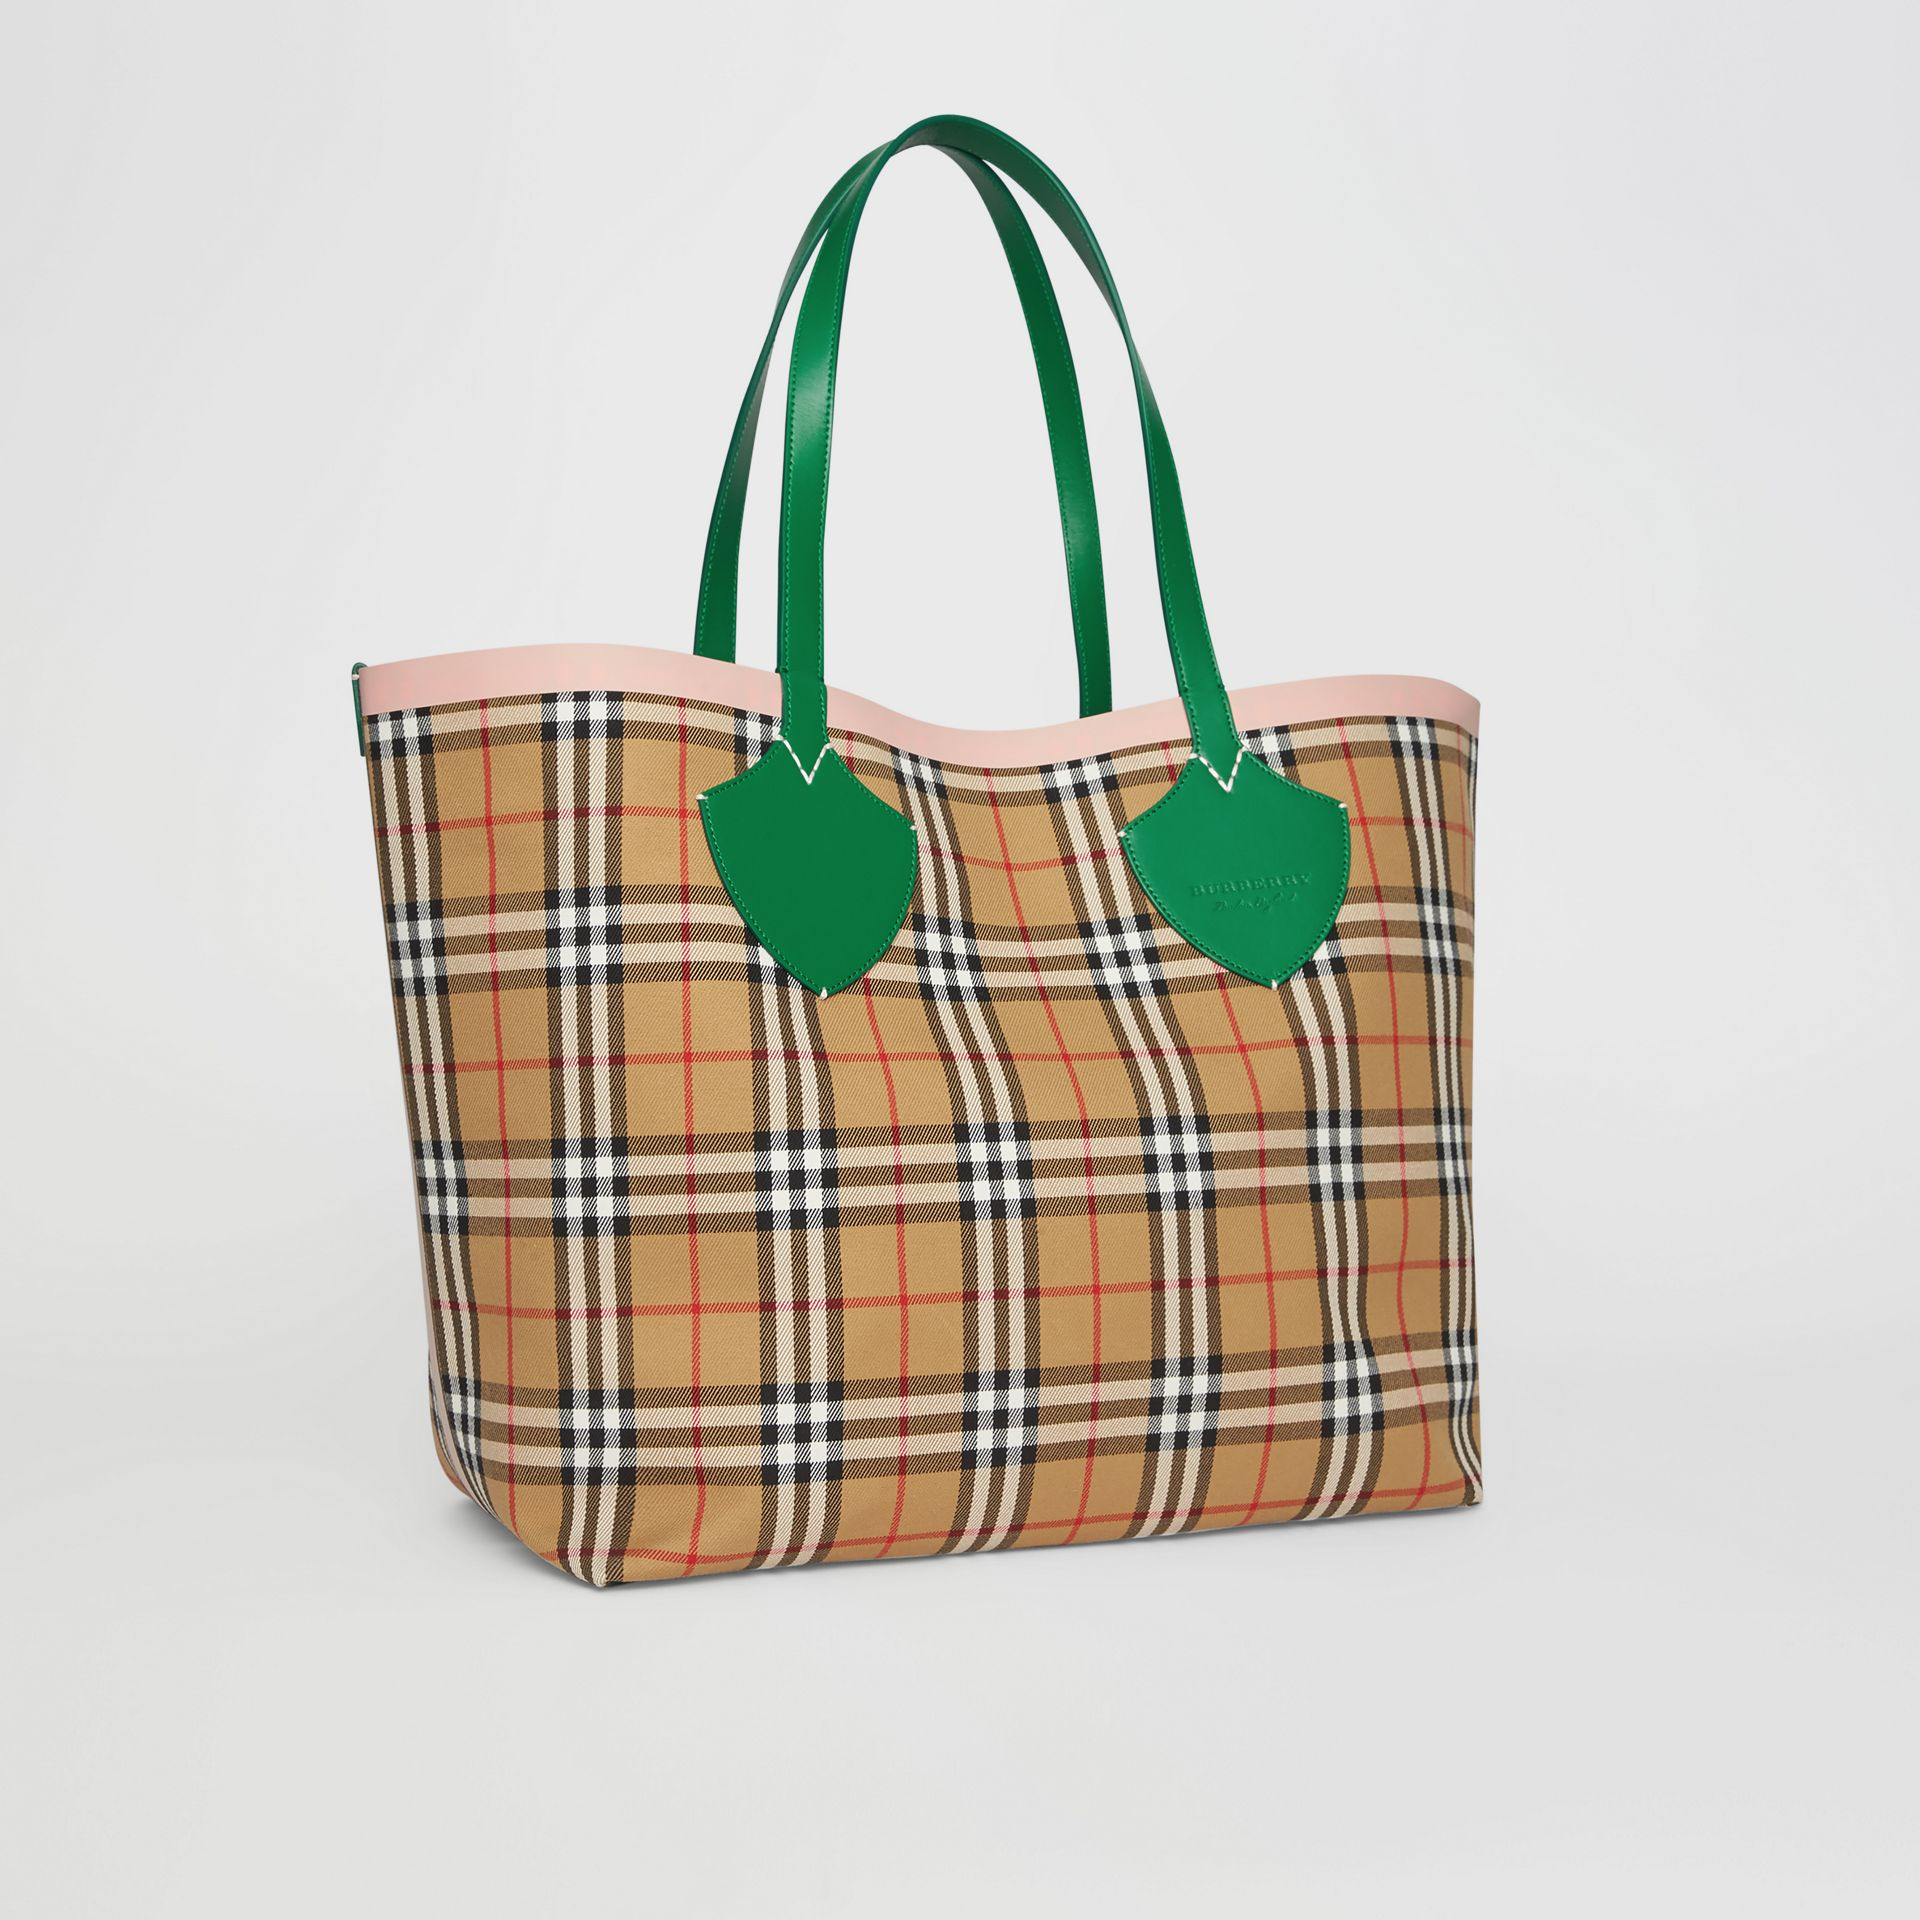 The Giant Reversible Tote in Vintage Check in Palm Green/pink Apricot - Women | Burberry - gallery image 8